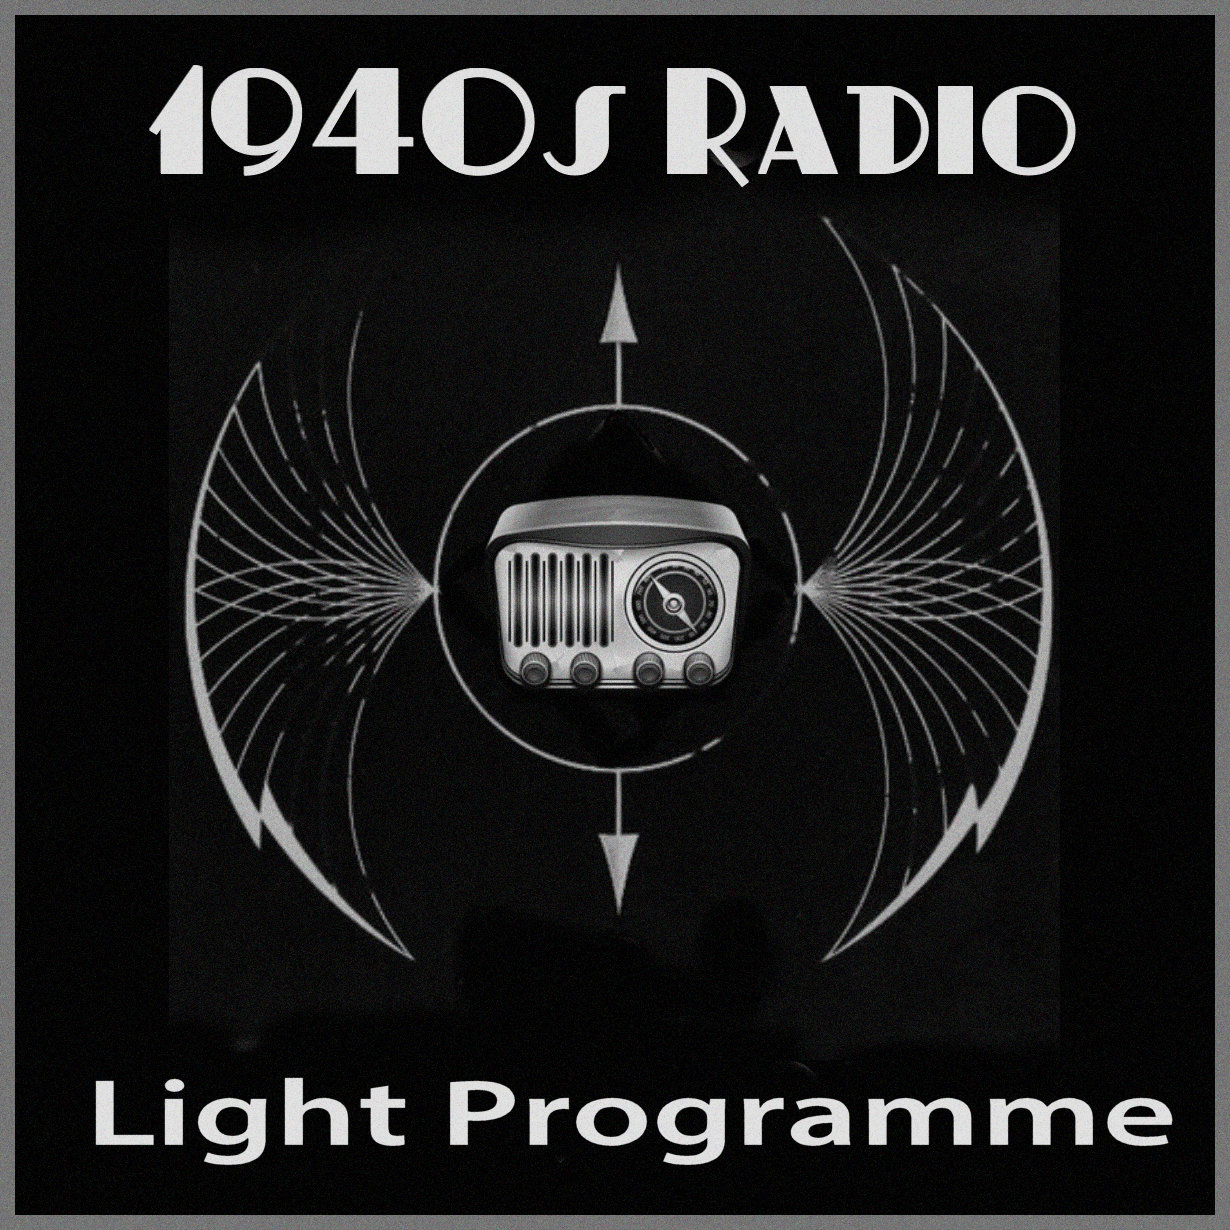 1940s Radio - Light Programme - 1930s 1940s 1950s (Pumpkin FM OTRN)